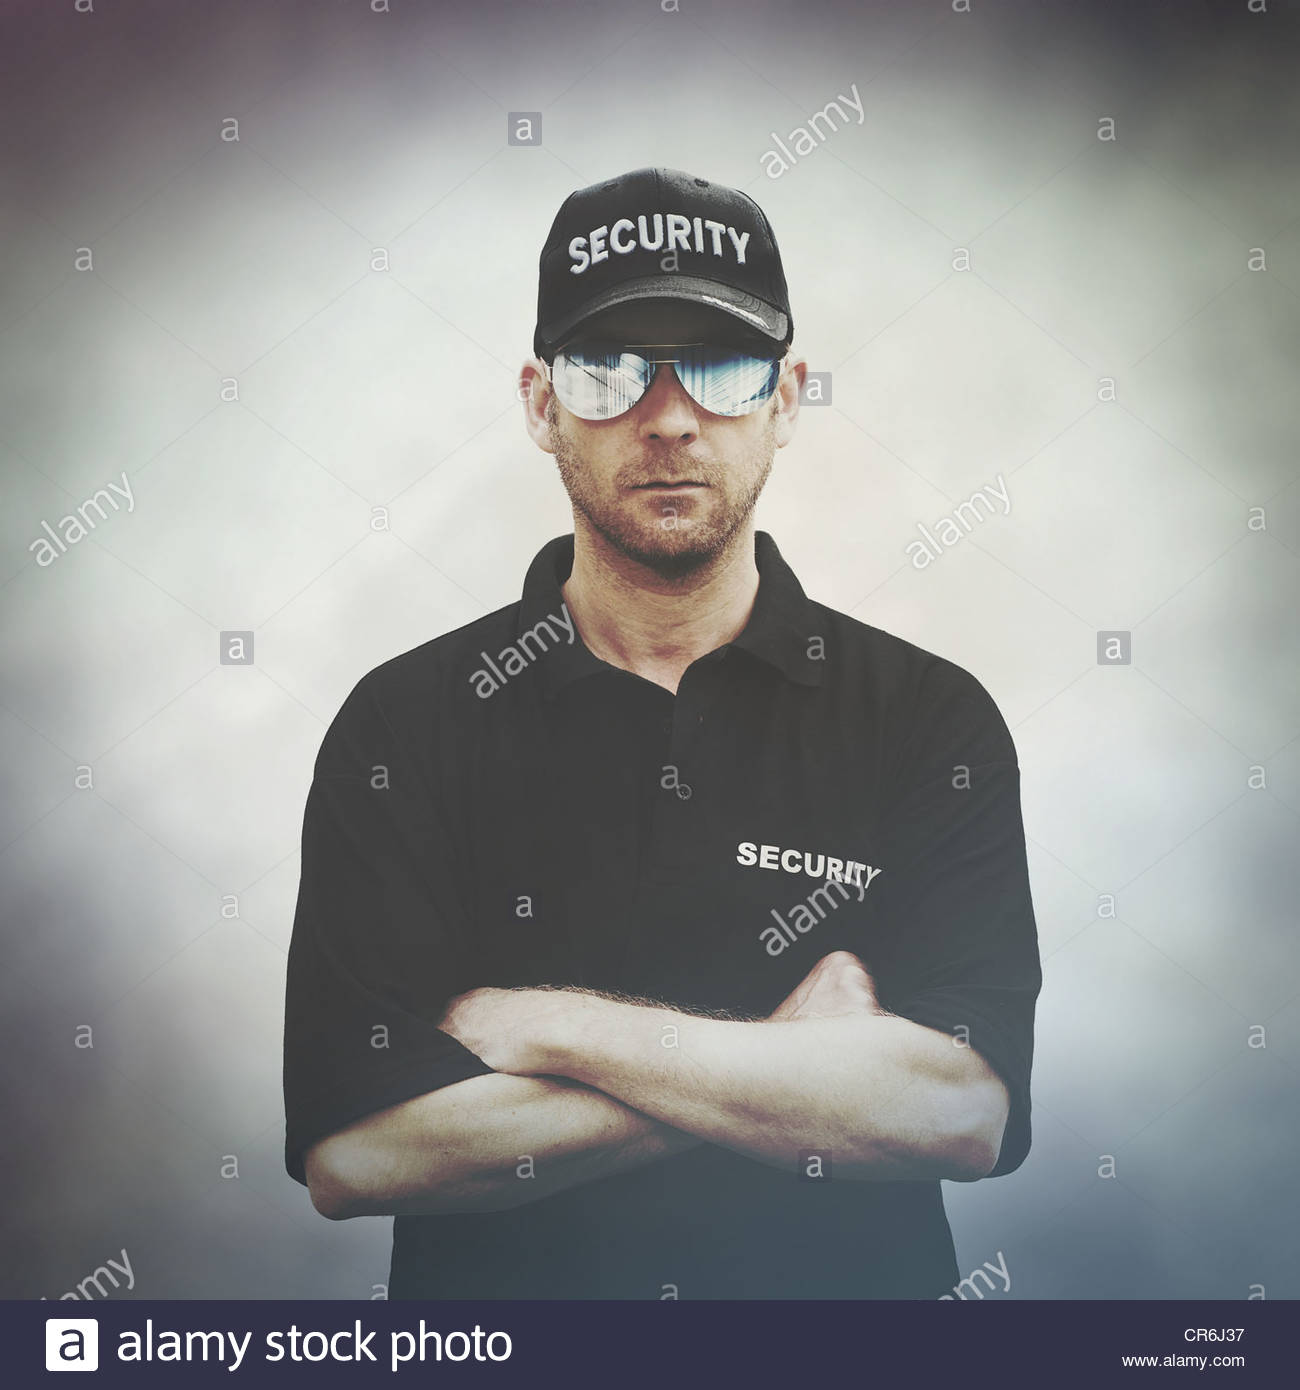 security control - Stock Image